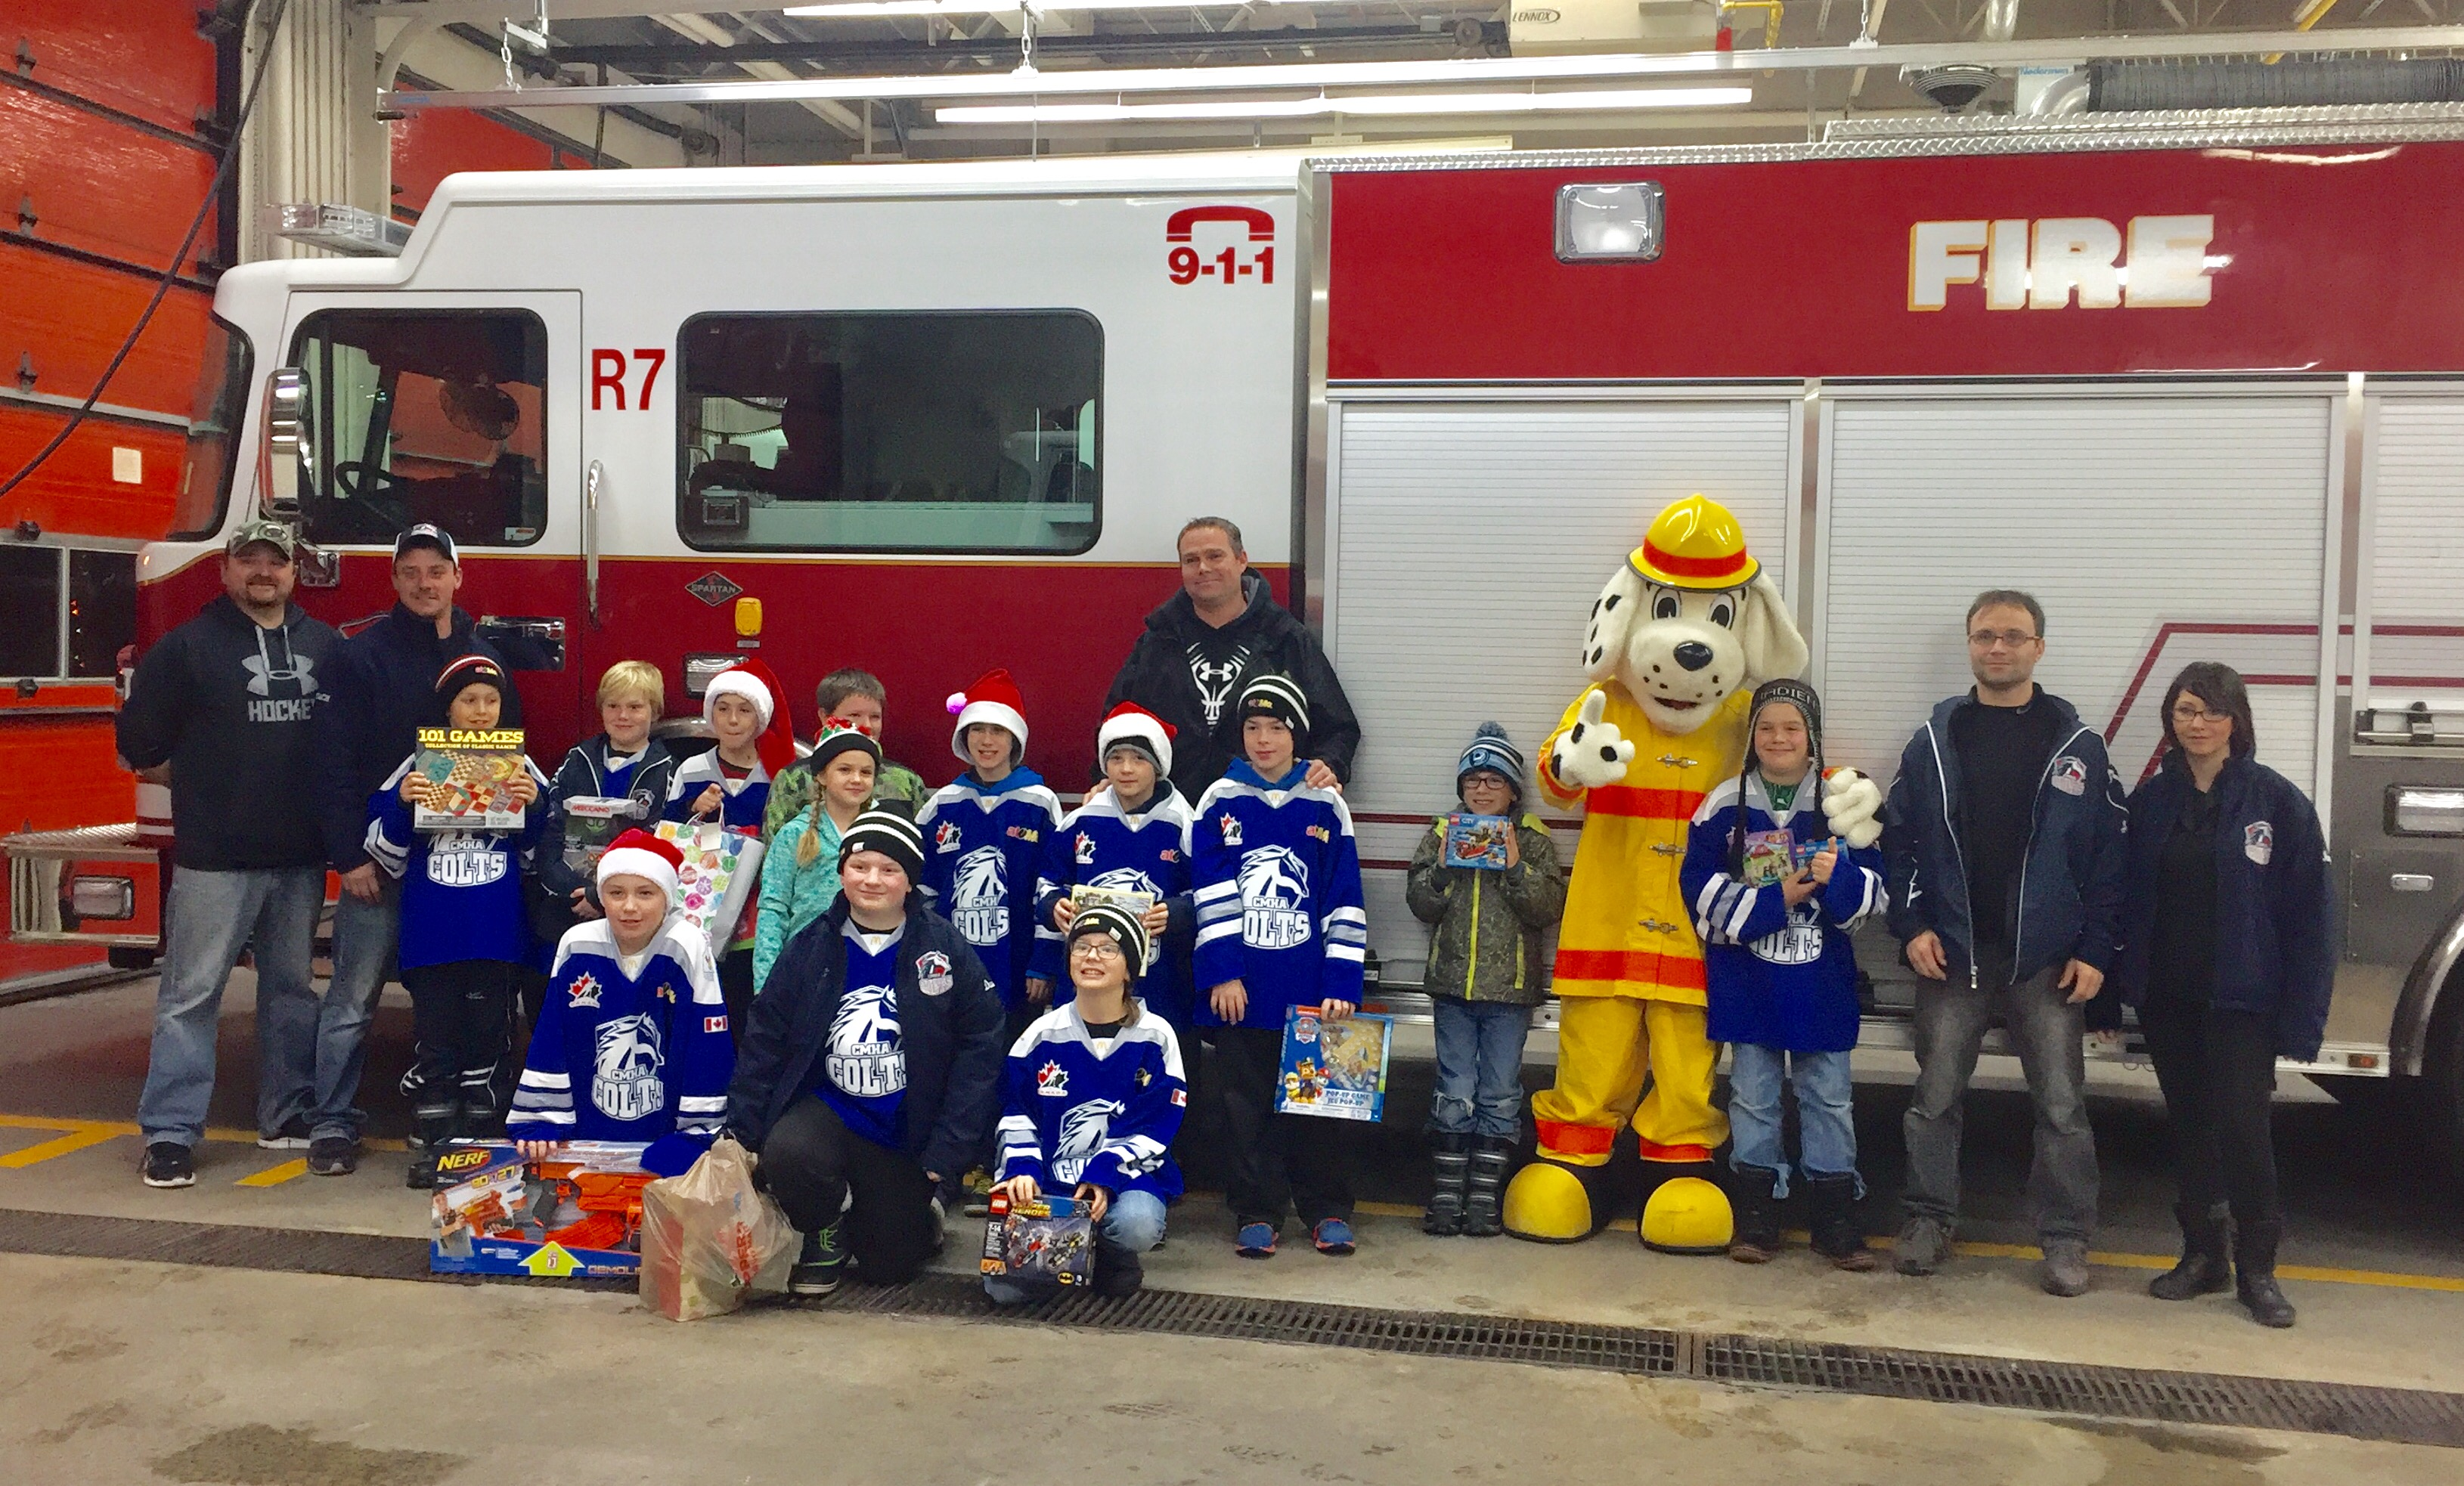 Children stand in front of fire truck with blue jerseys on